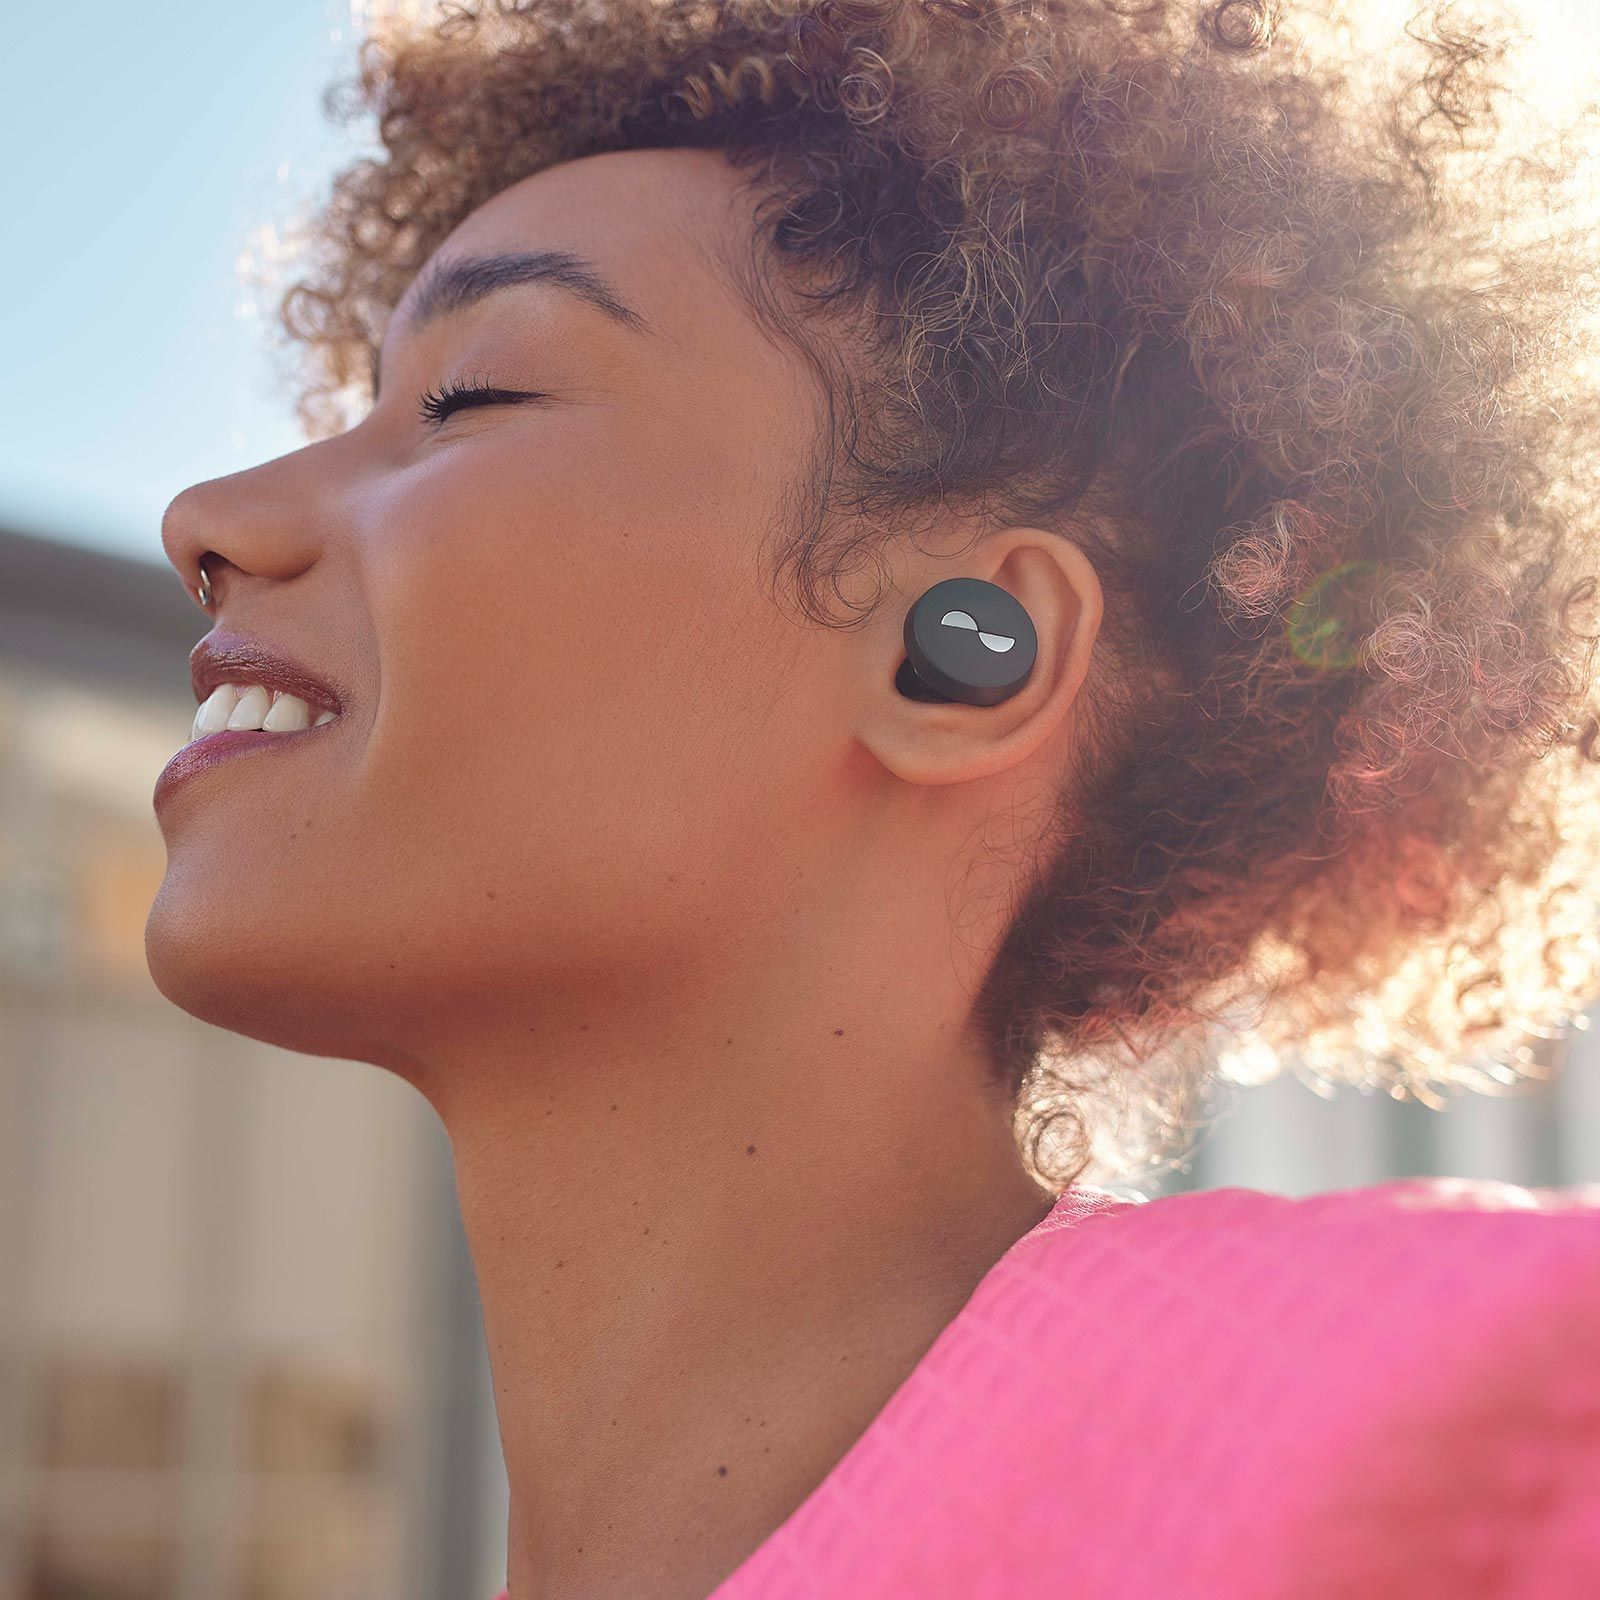 Person with eyes closed listening to sound with NURATRUE earbuds in ears